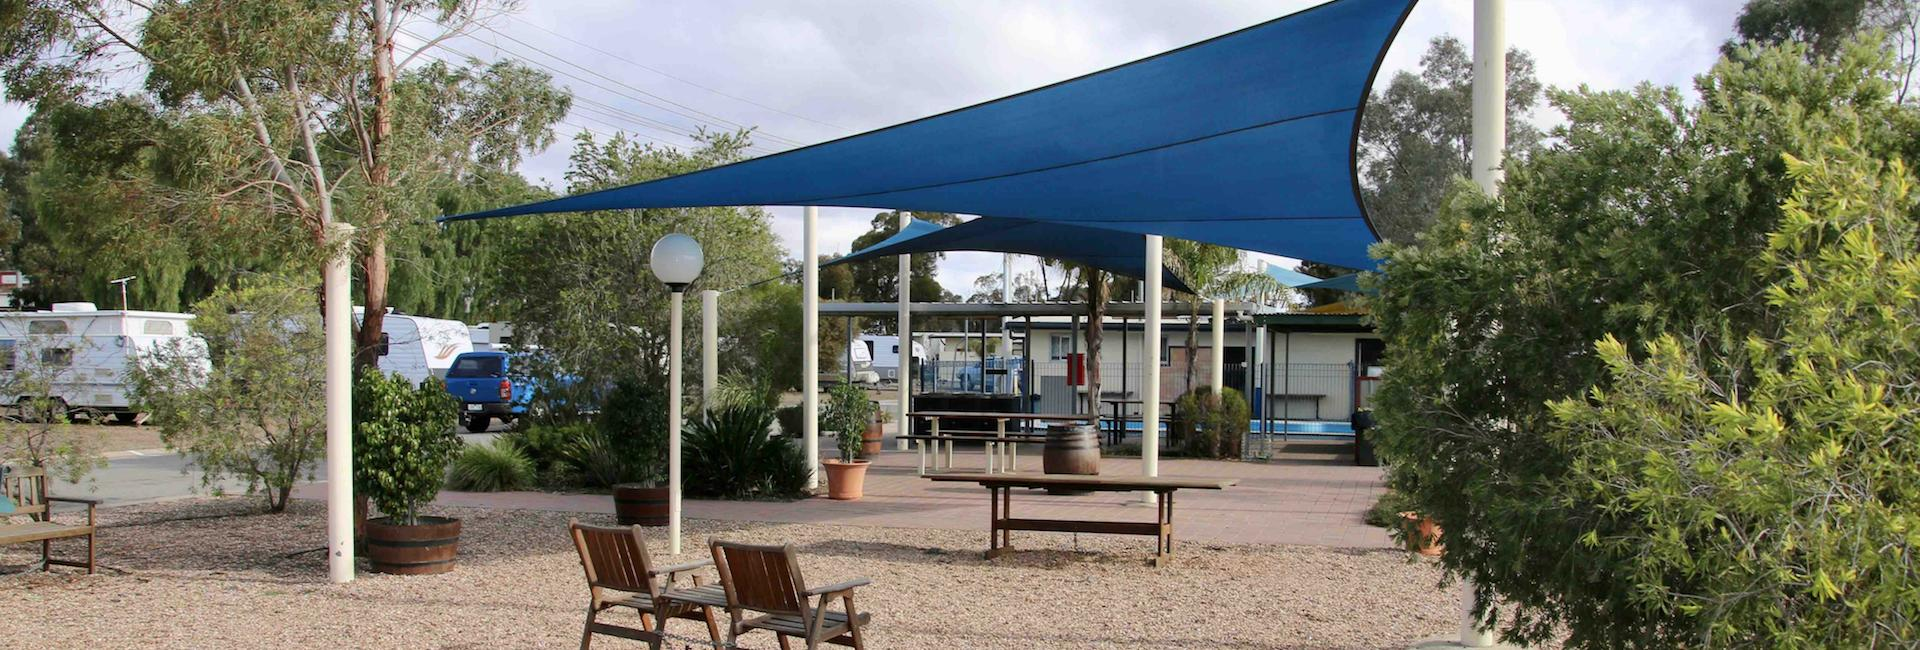 Shaded relaxation area at Broken Hill Tourist Park